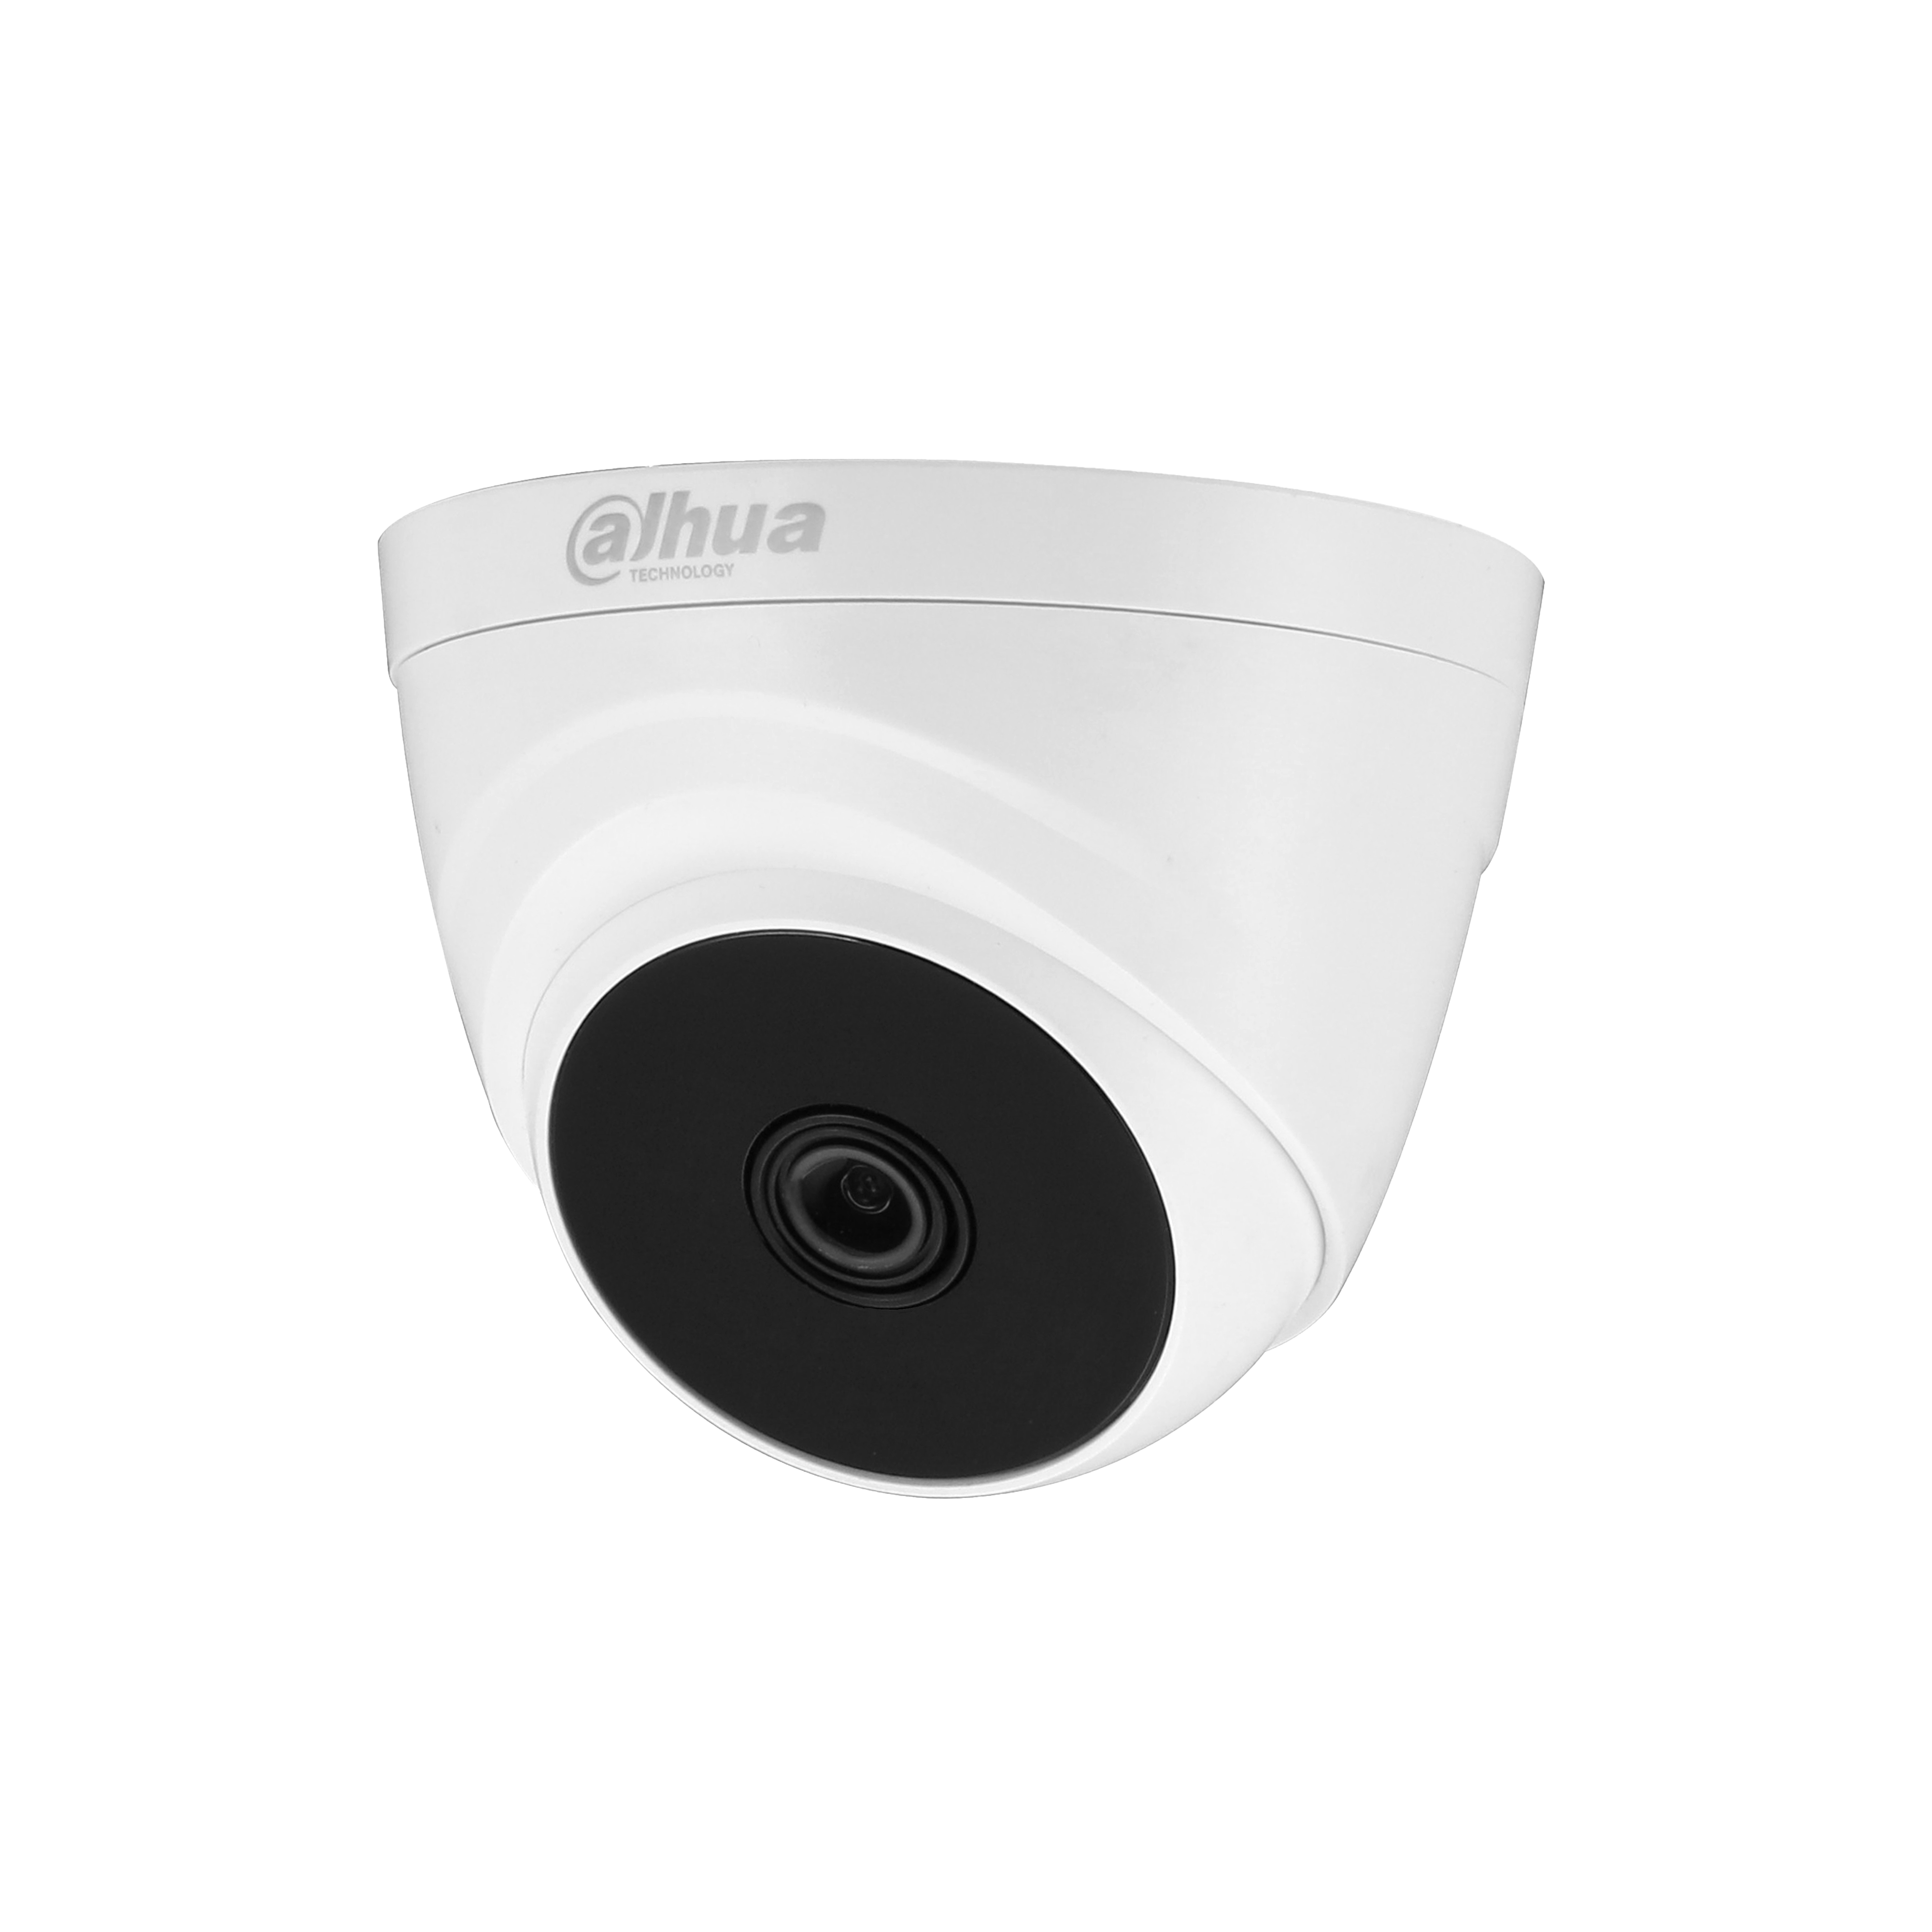 https://www.dahuasecurity.com/asset/upload/product/20180702/HAC-T1A21.PNG